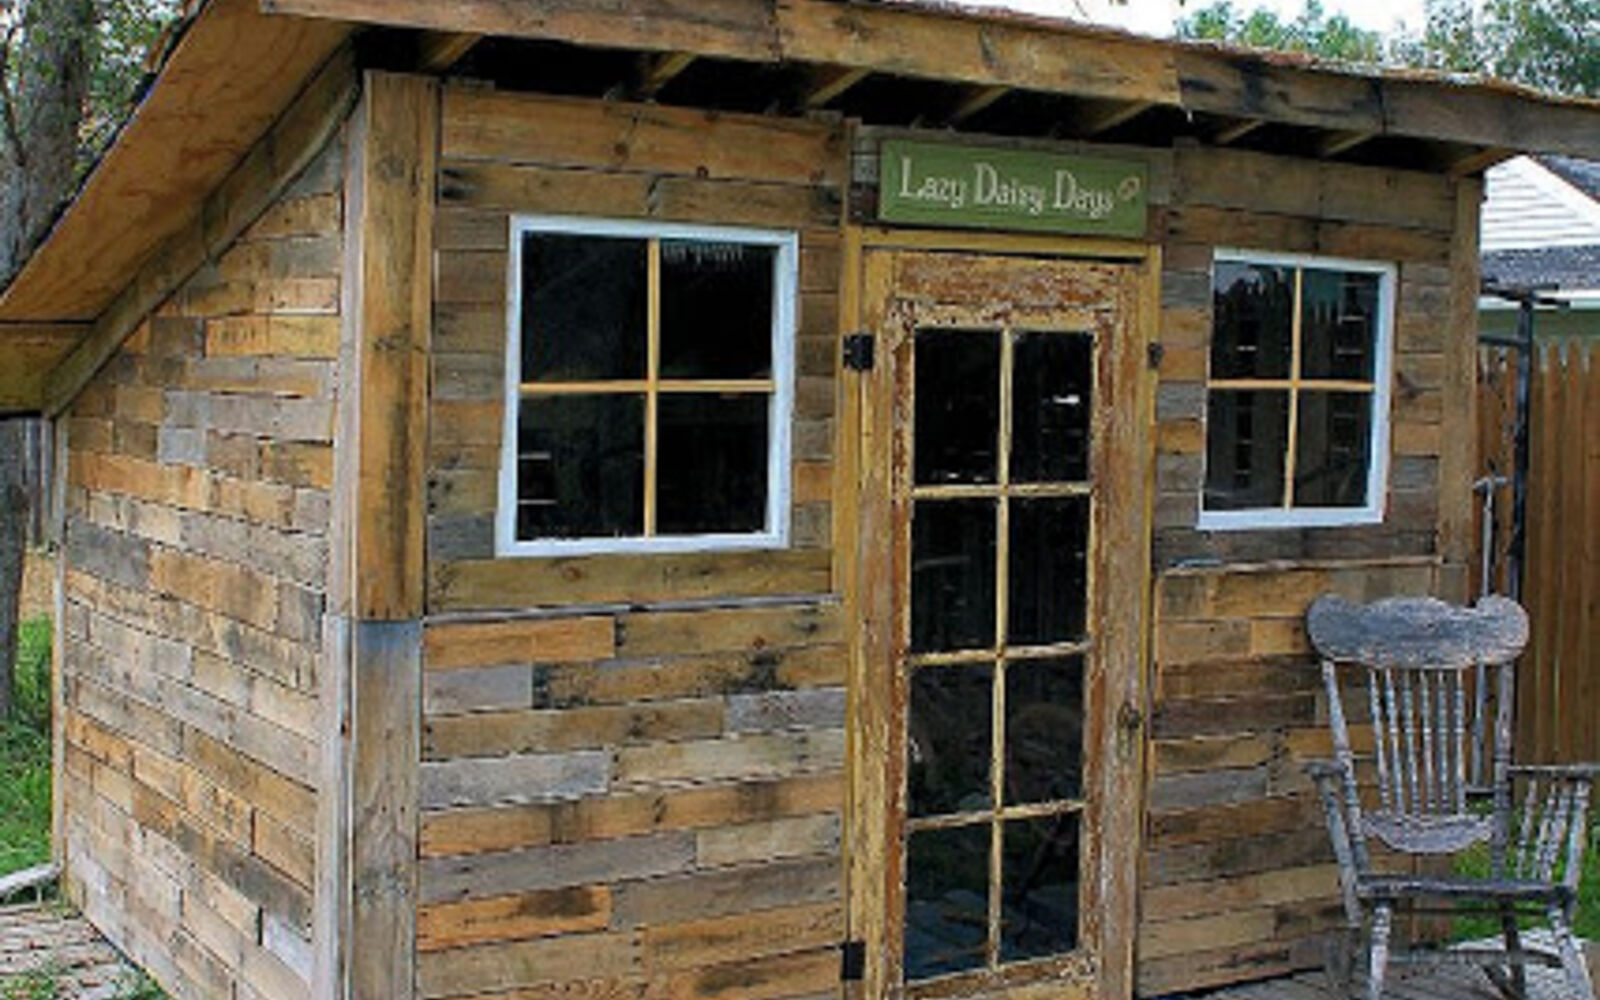 s upgrade your backyard with these 30 clever ideas, Assemble pallets and old windows into a shed